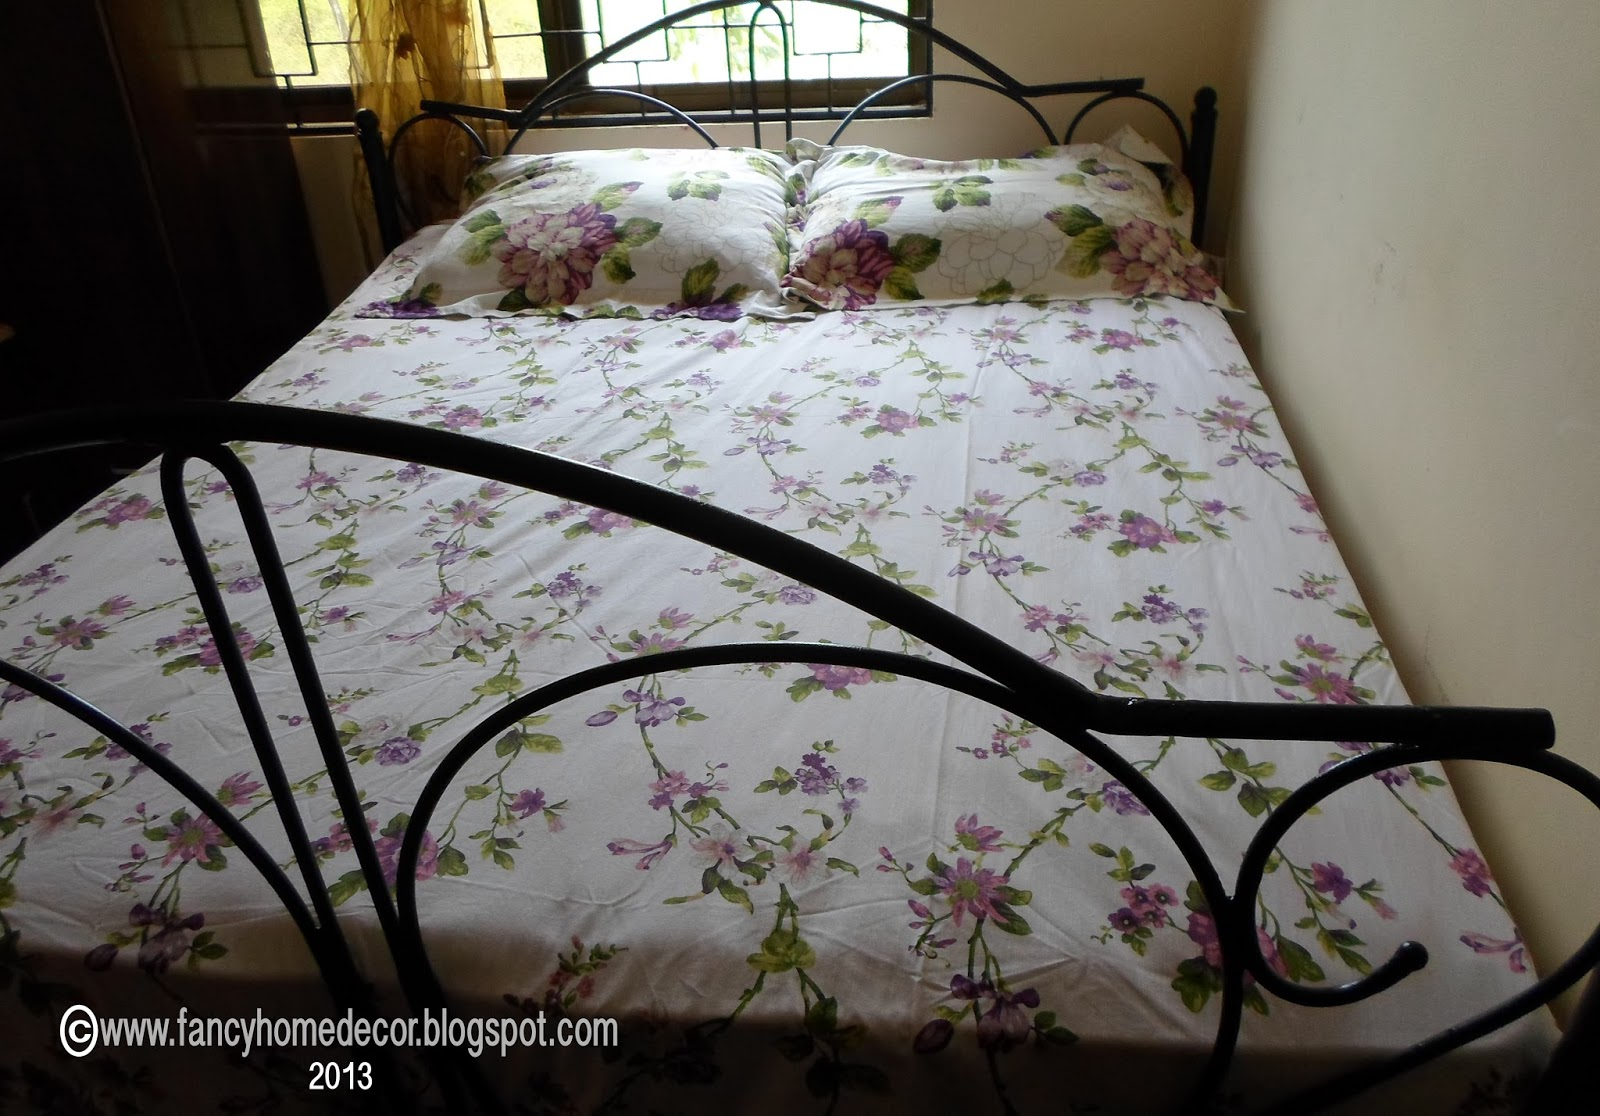 Fancy Home Decor: MY PROJECT: METAL BED SIZE 6X6 - SITE YA ...